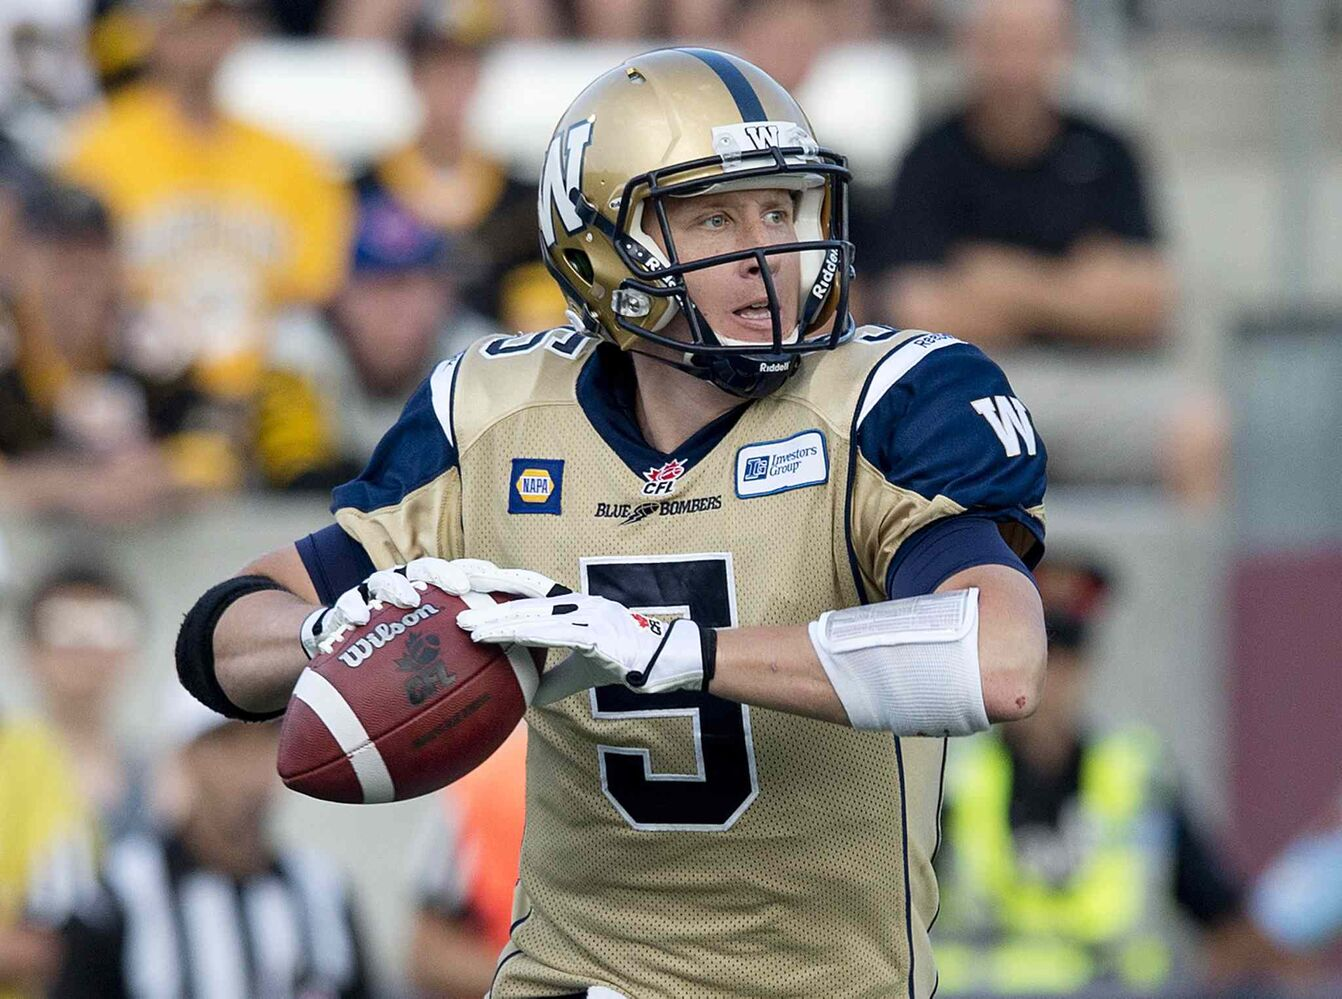 Winnipeg Blue Bombers' quarterback Drew Willy looks for a pass against the Hamilton Tiger-Cats in the first half of Thursday's game. (Nathan Denette / The Canadian Press)